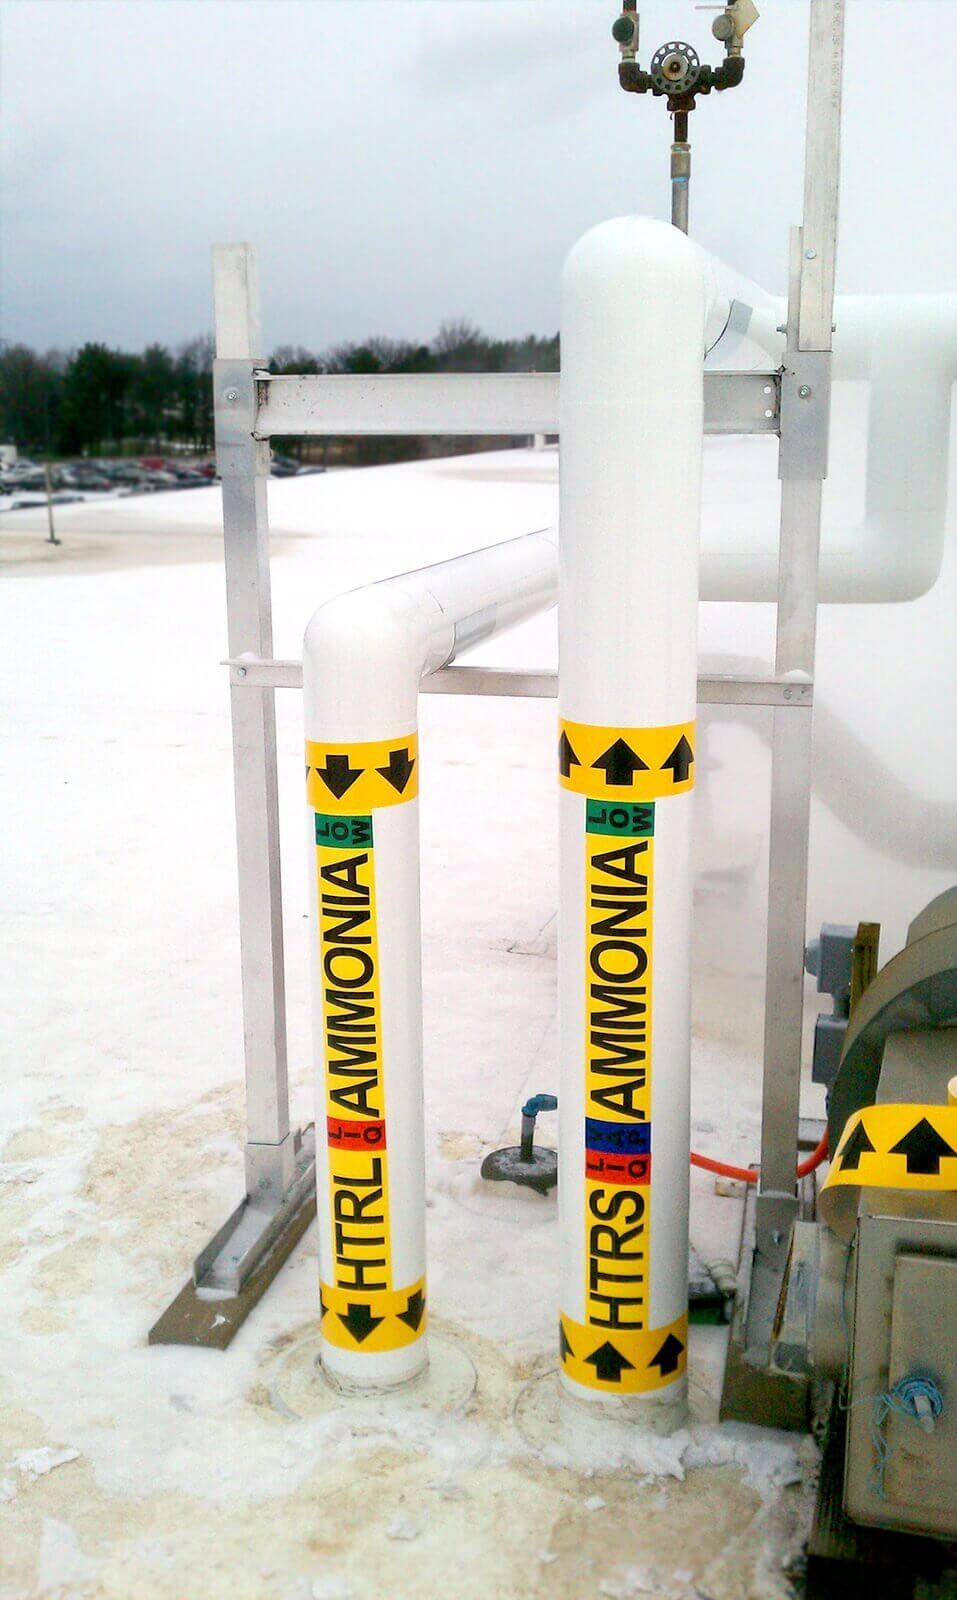 Anhydrous Ammonia Refrigerant Safety